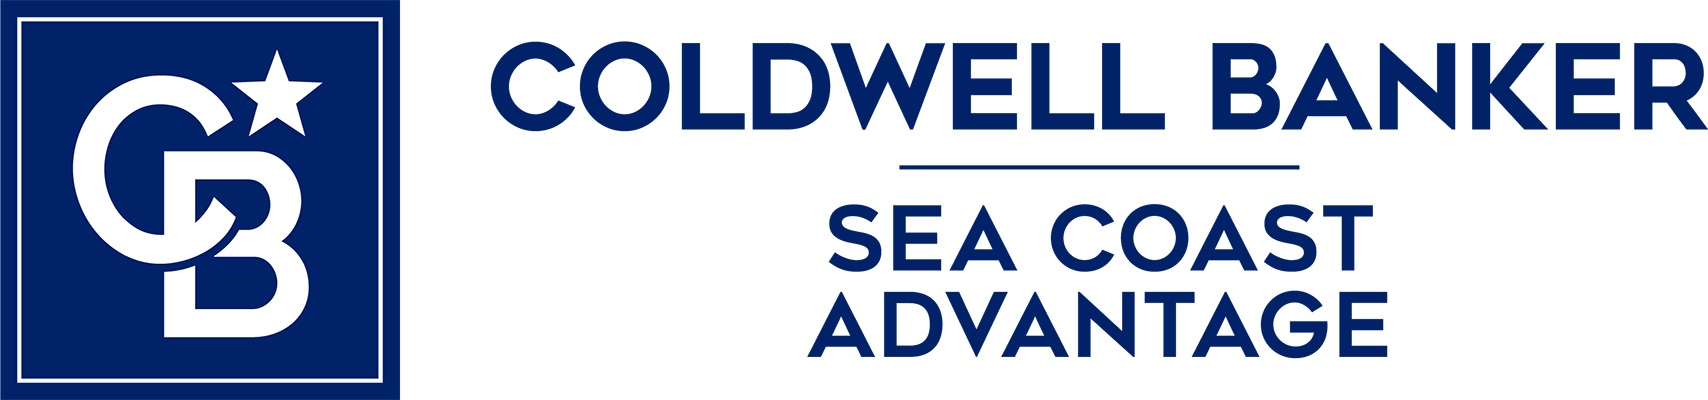 Daryl Bundy - Coldwell Banker Sea Coast Advantage Realty